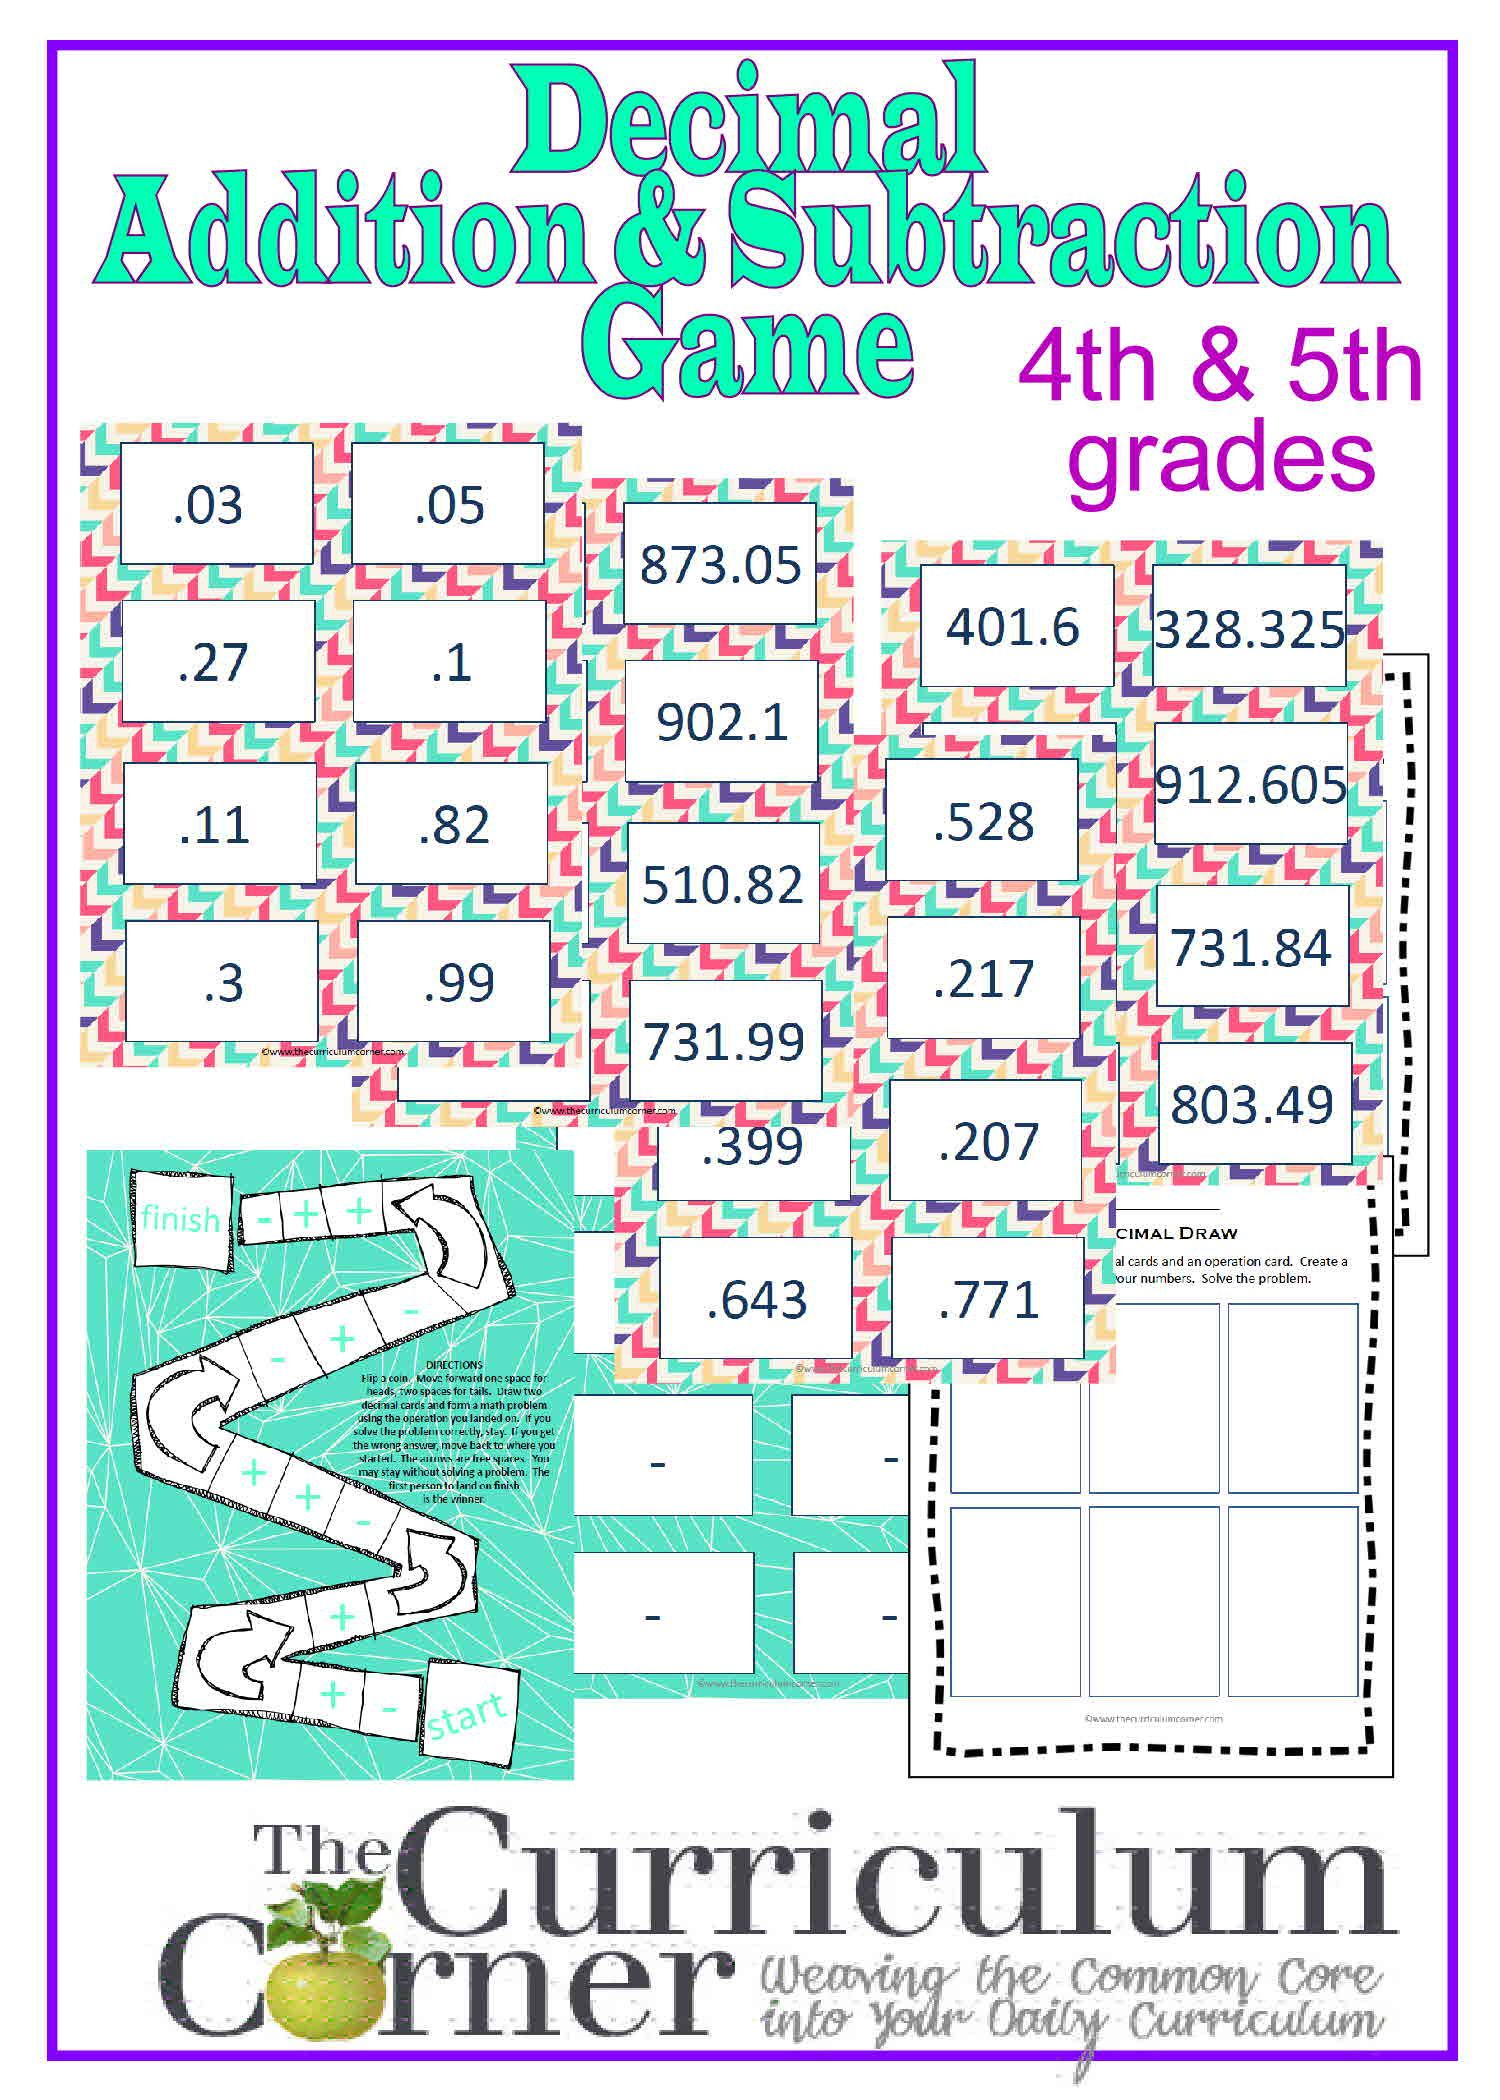 Adding & Subtracting Decimals Game | Fourth and Fifth Grade Flyers ...